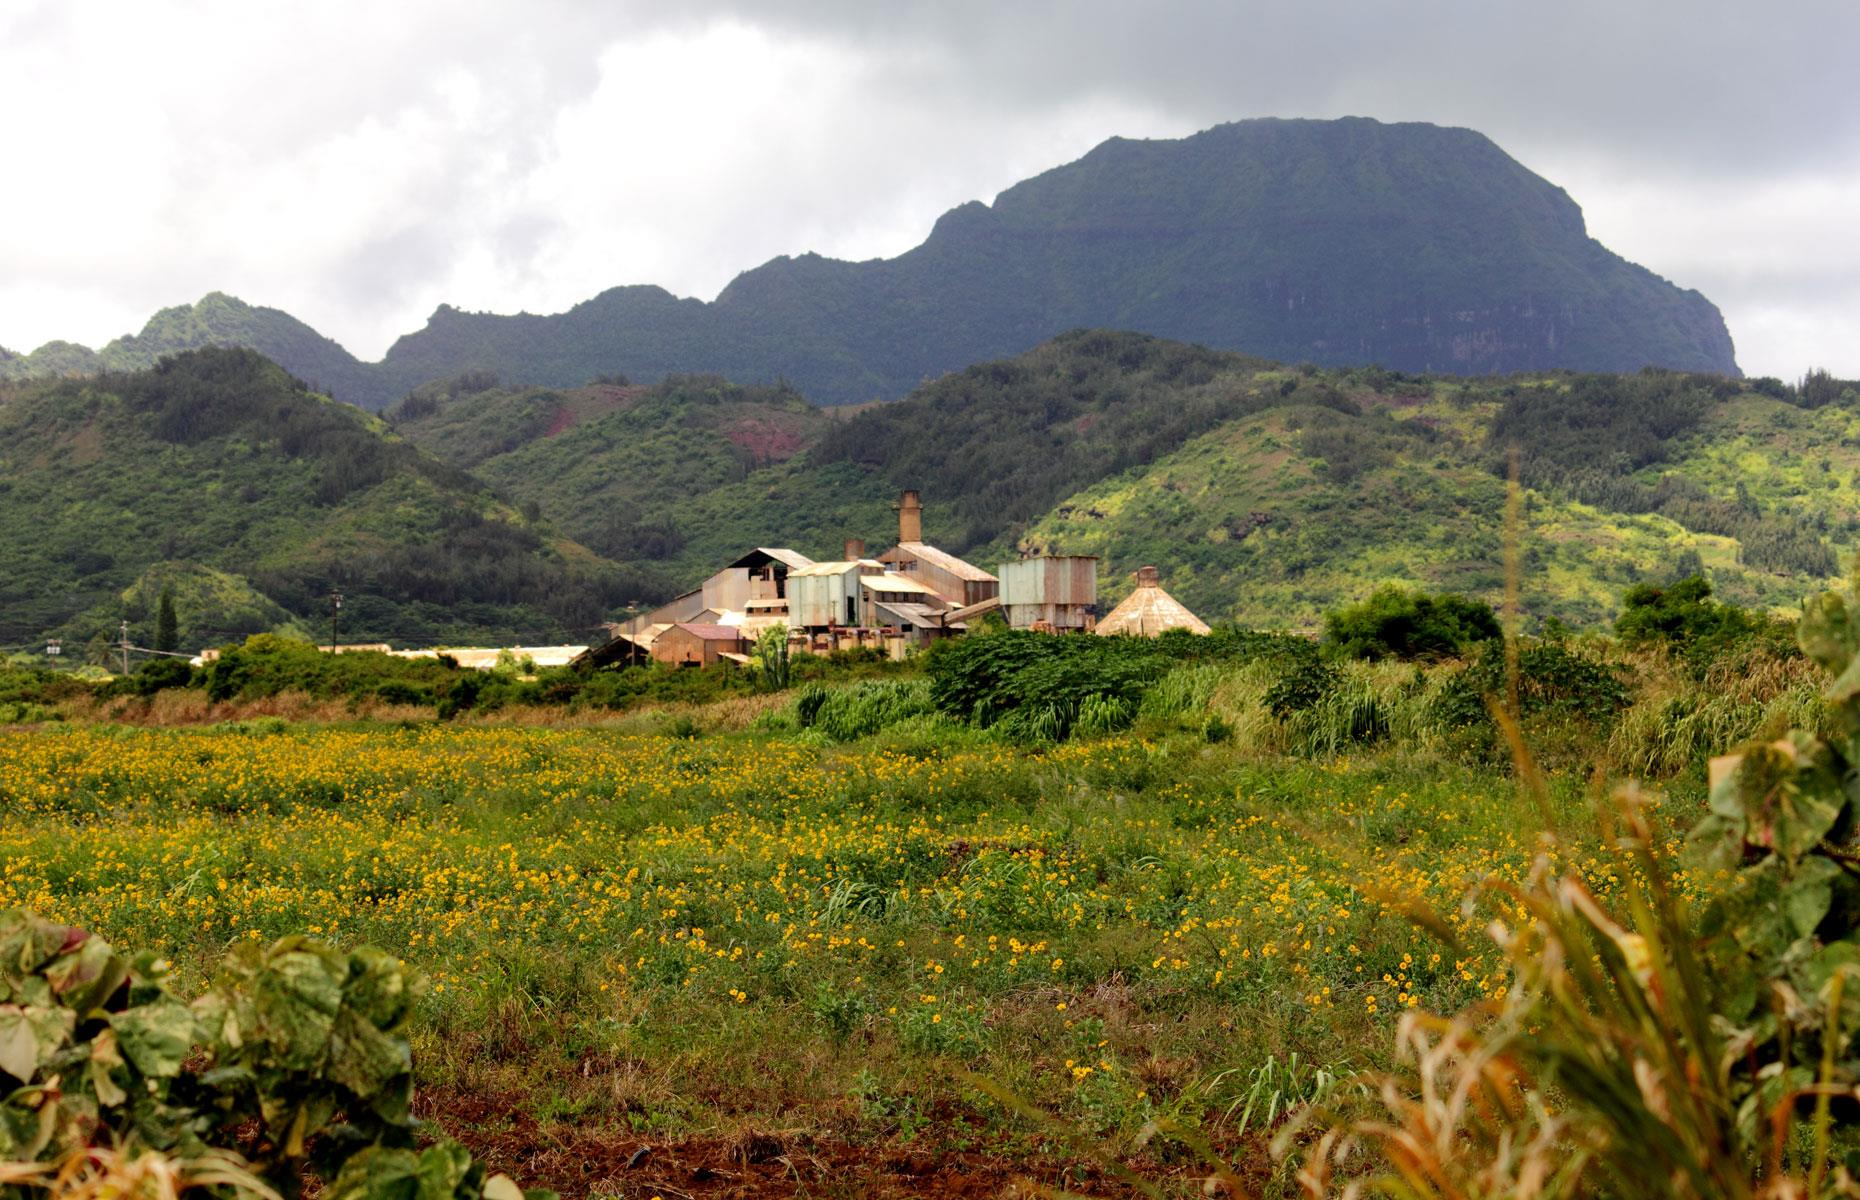 Slide 22 of 101: A blight on the tropical landscape for some and a key piece of Hawaiian history for others, the Old Sugar Mill of Kōloa was Hawaii's first commercially viable sugar cane plantation. The mill was established in 1835 and thrived throughout the 19th century.